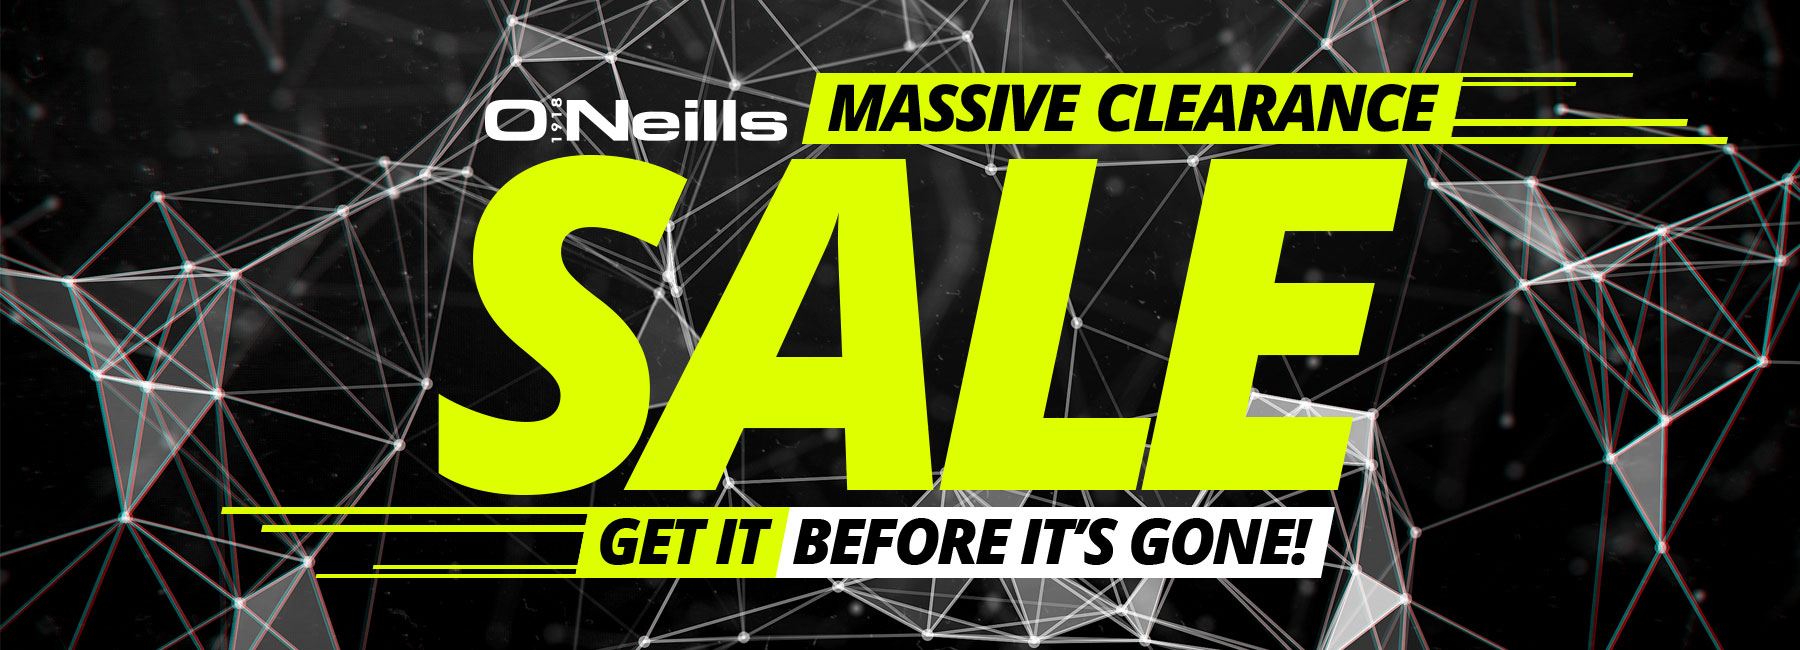 Massive Clearance Sale!